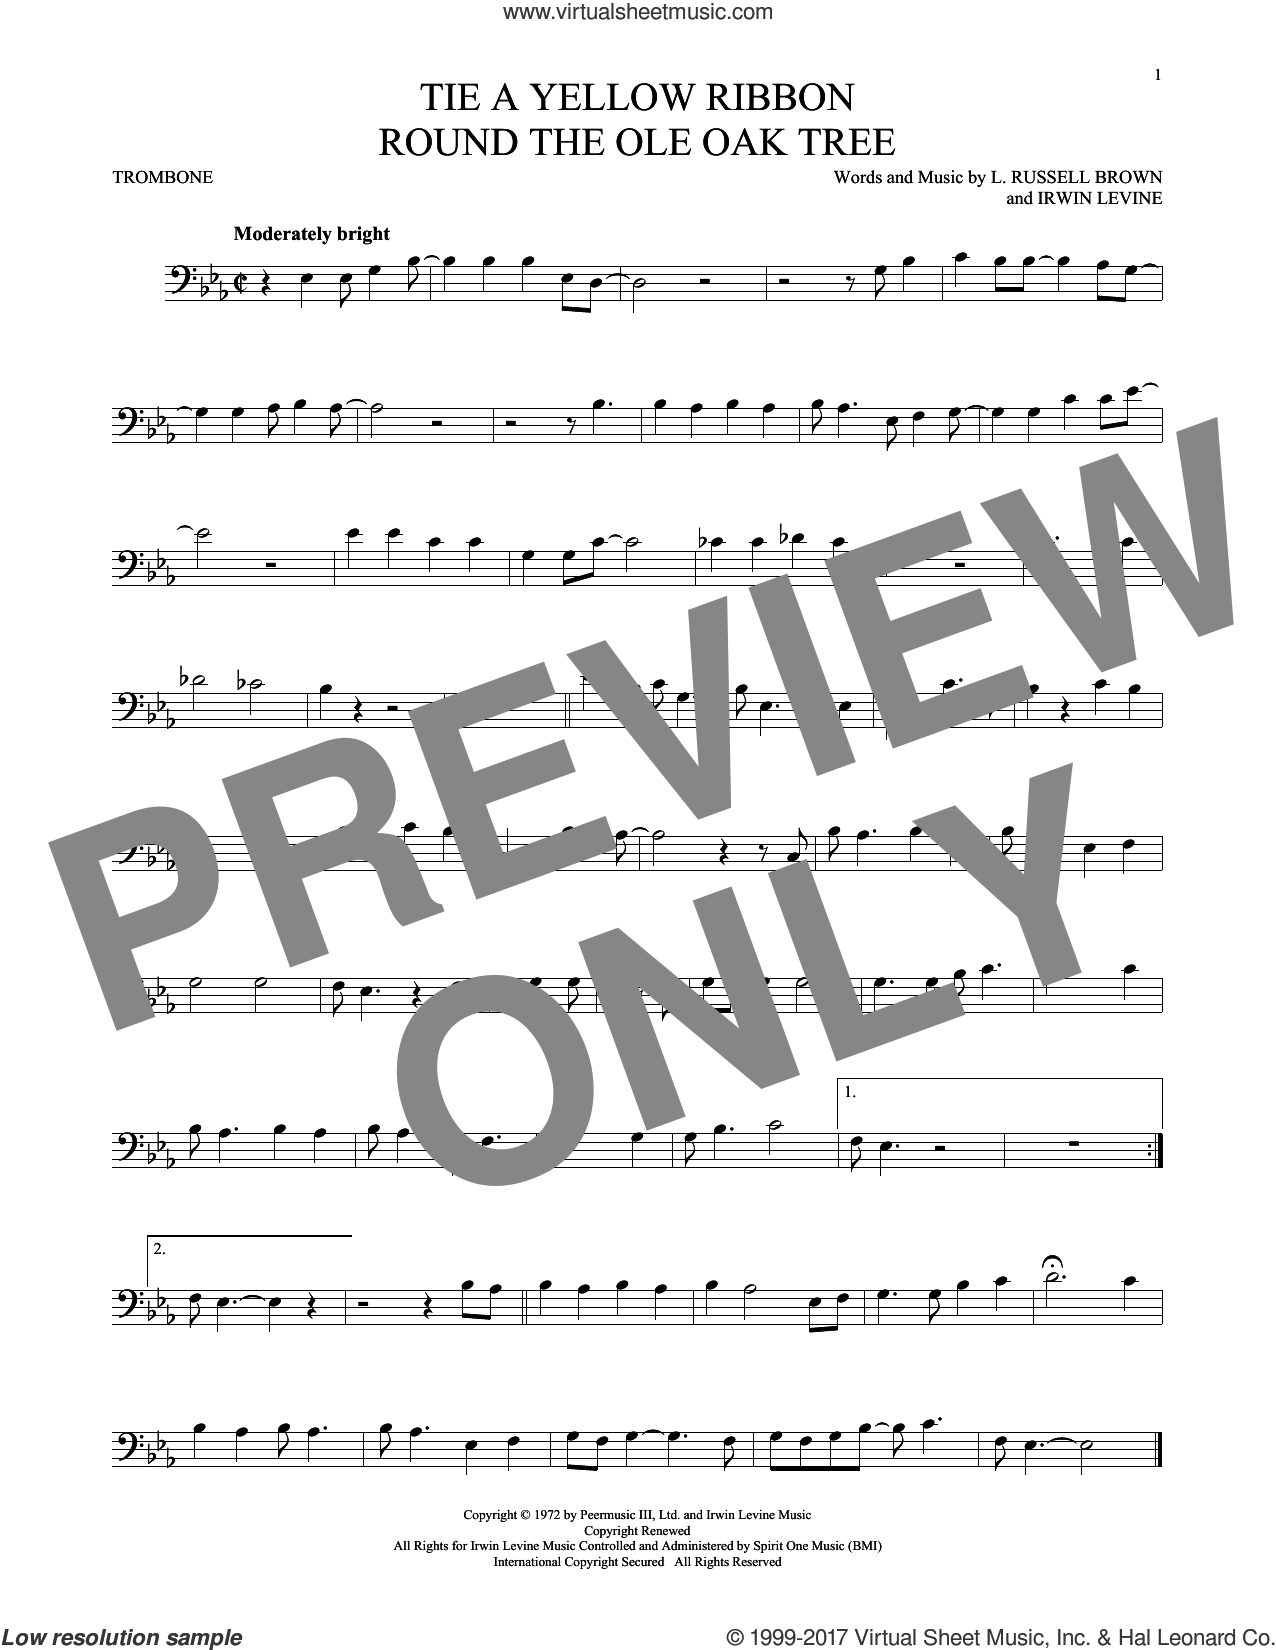 Tie A Yellow Ribbon Round The Ole Oak Tree sheet music for trombone solo by Dawn featuring Tony Orlando and Irwin Levine, intermediate. Score Image Preview.